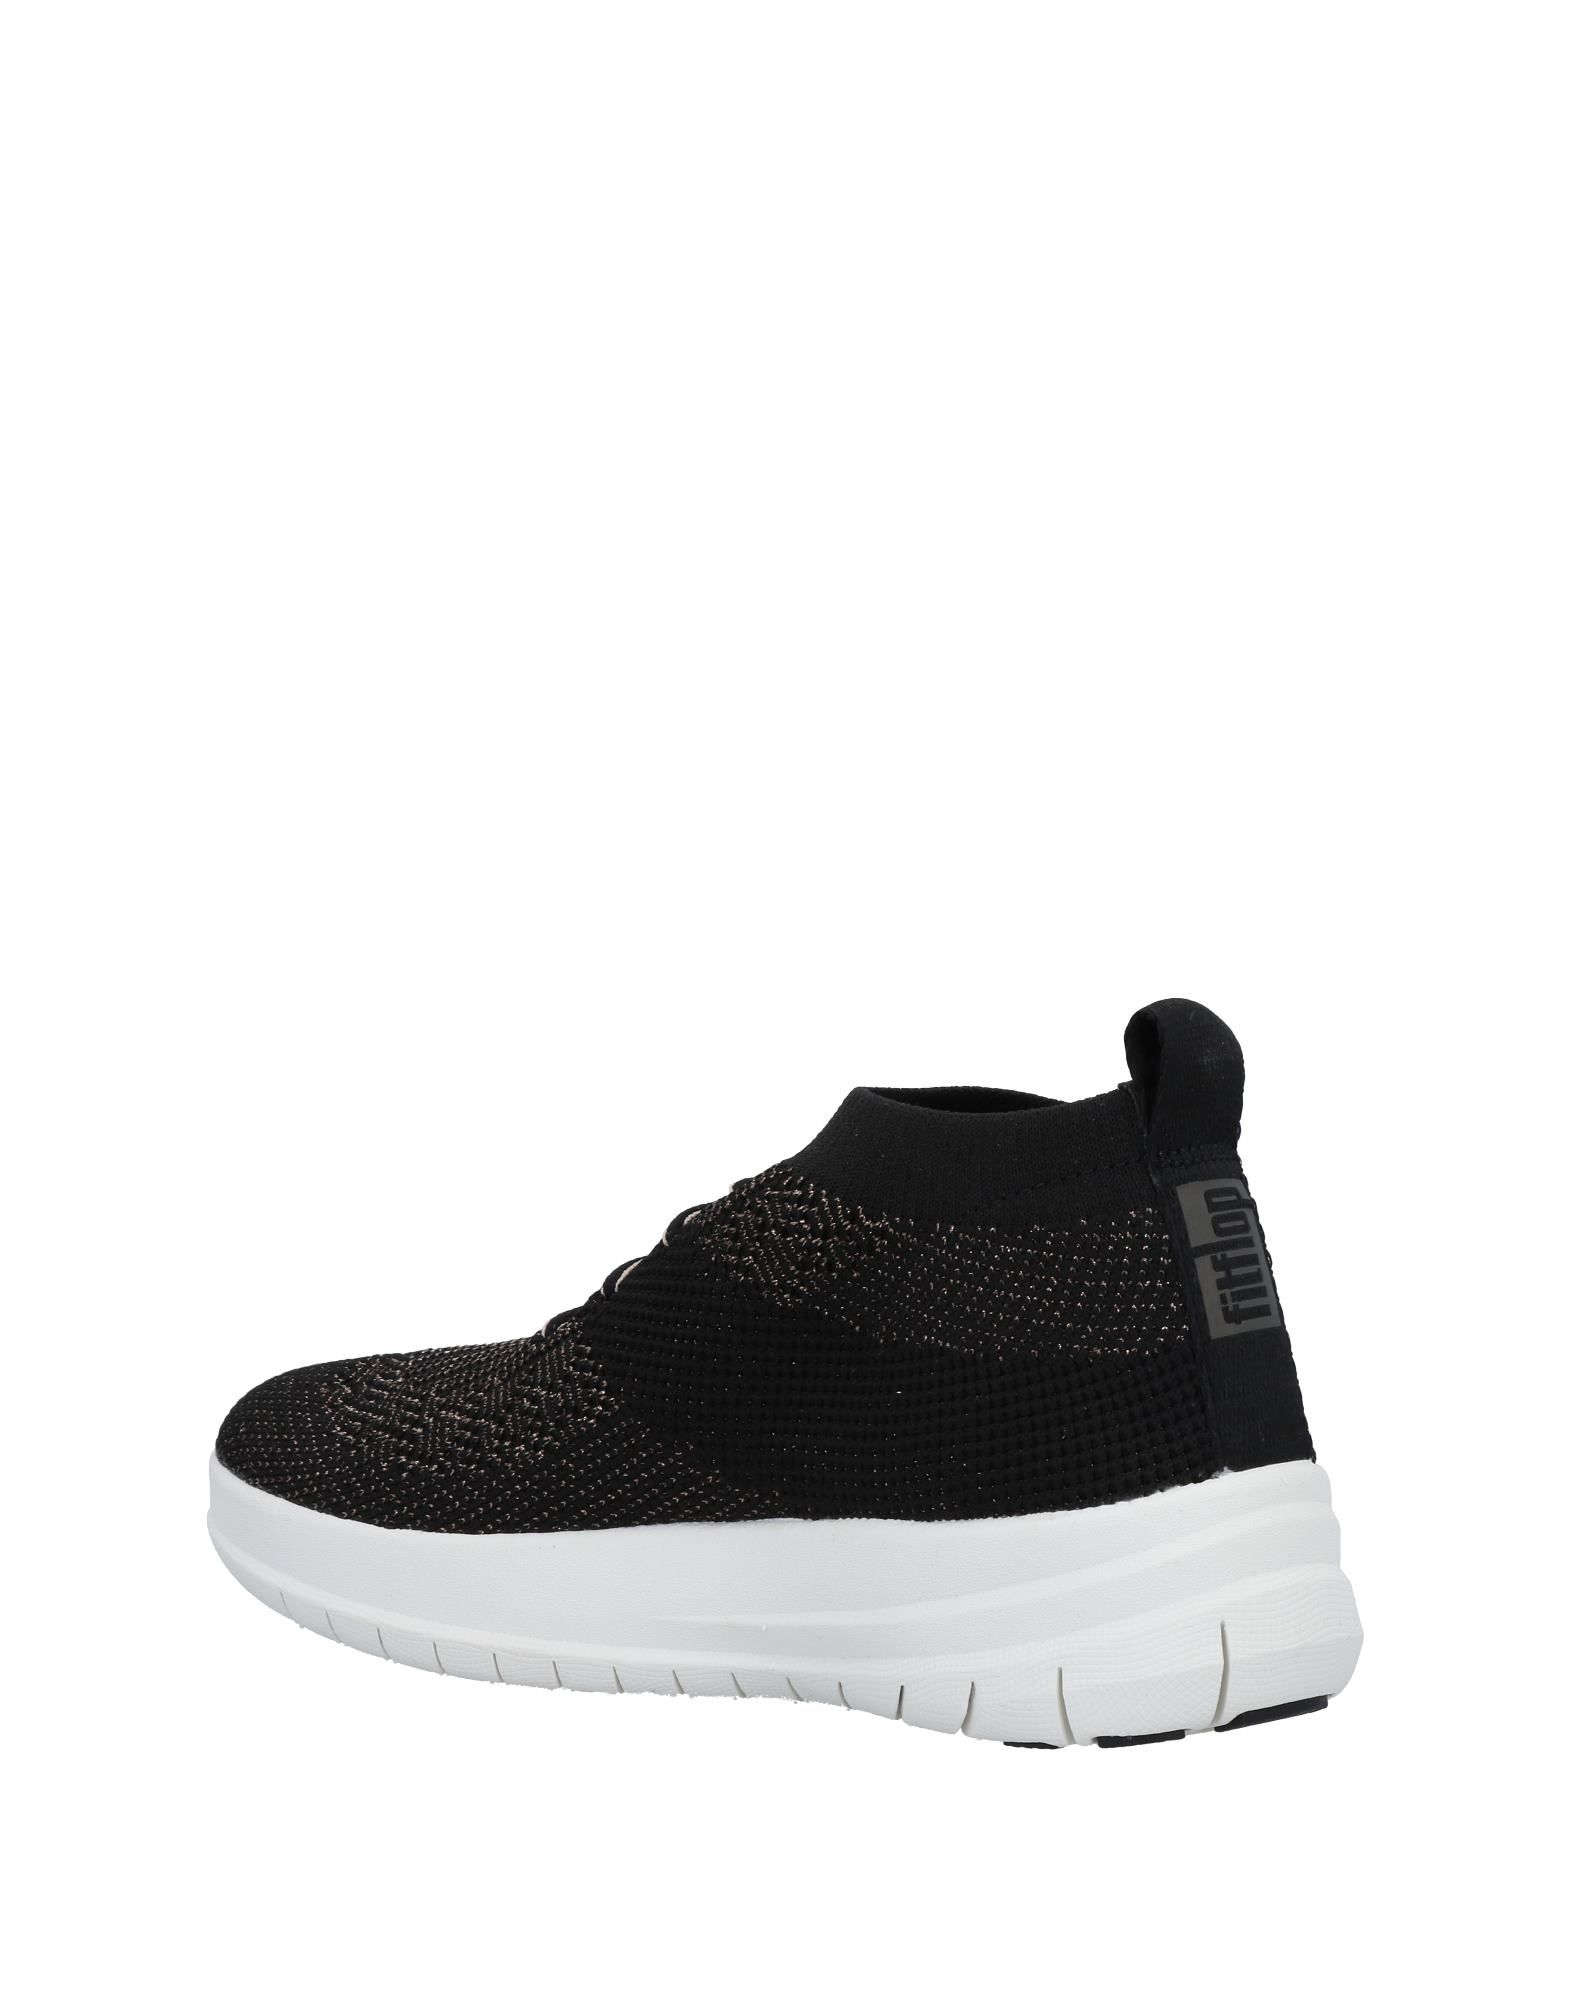 Fitflop Sneakers - Women Fitflop Sneakers online on  Canada Canada Canada - 11494262TN 305c72